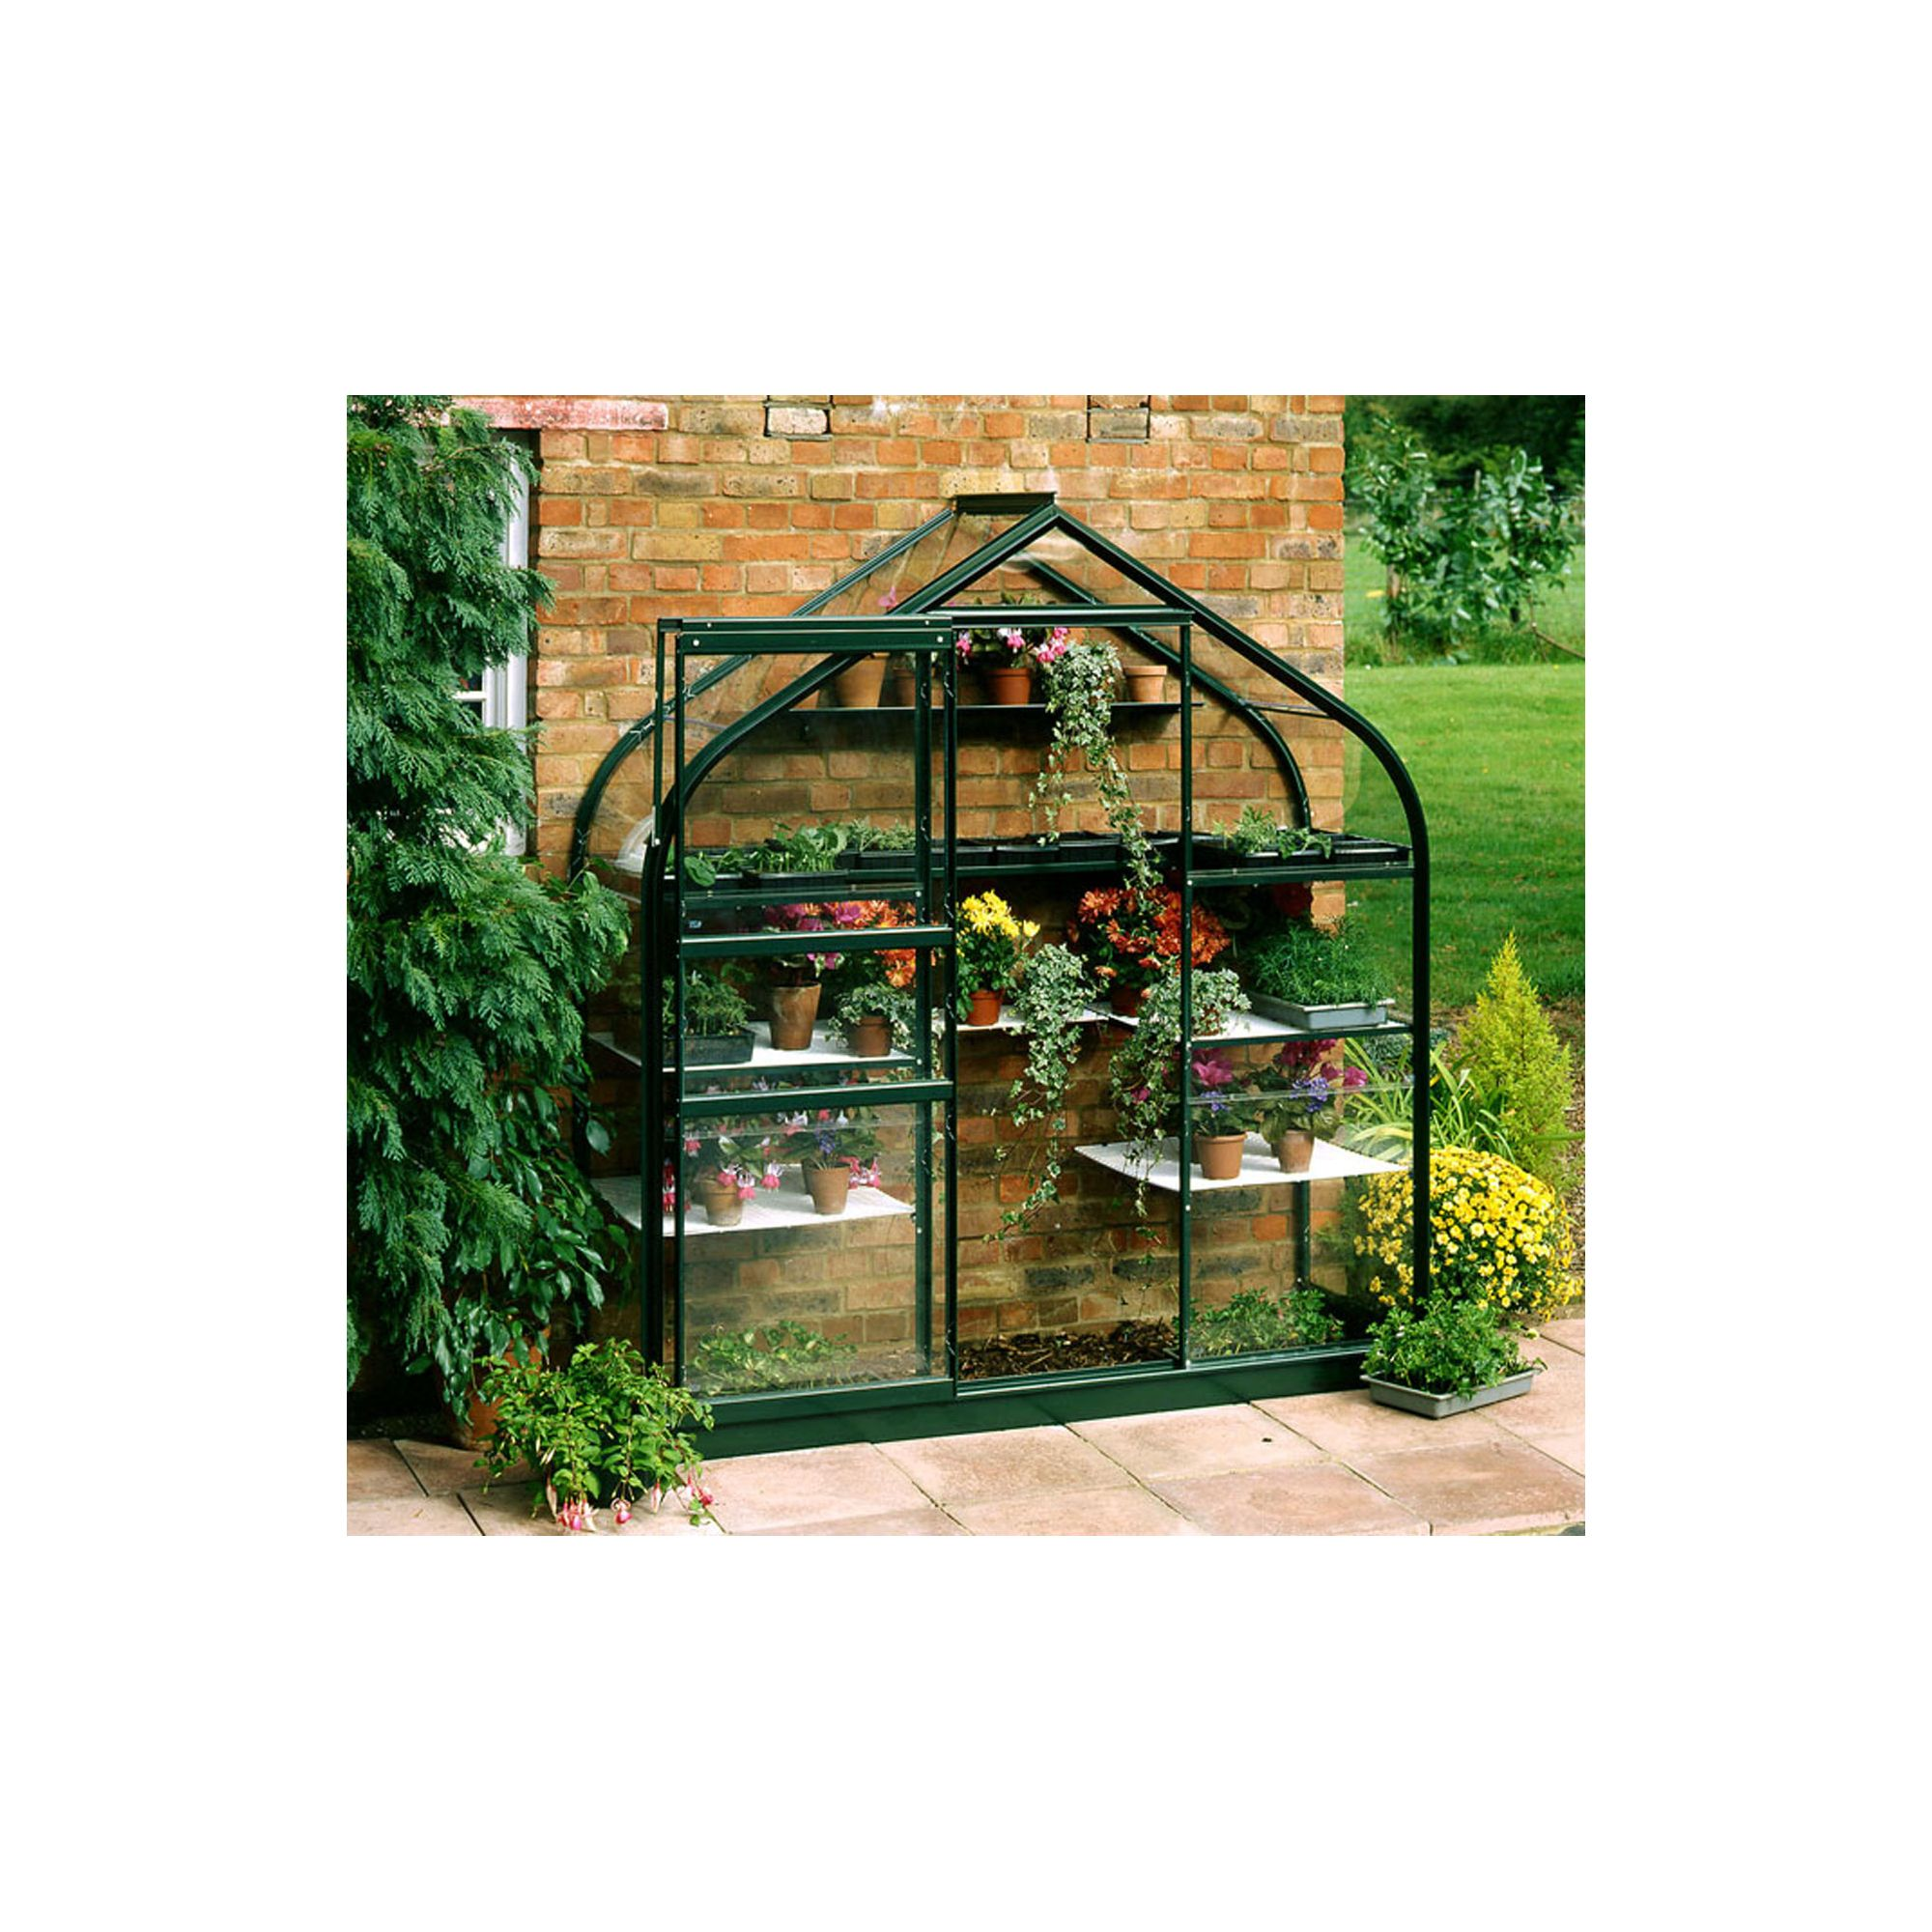 Halls 6x2 Supreme Greenframe Wall Greenhouse - Toughened Glass at Tesco Direct